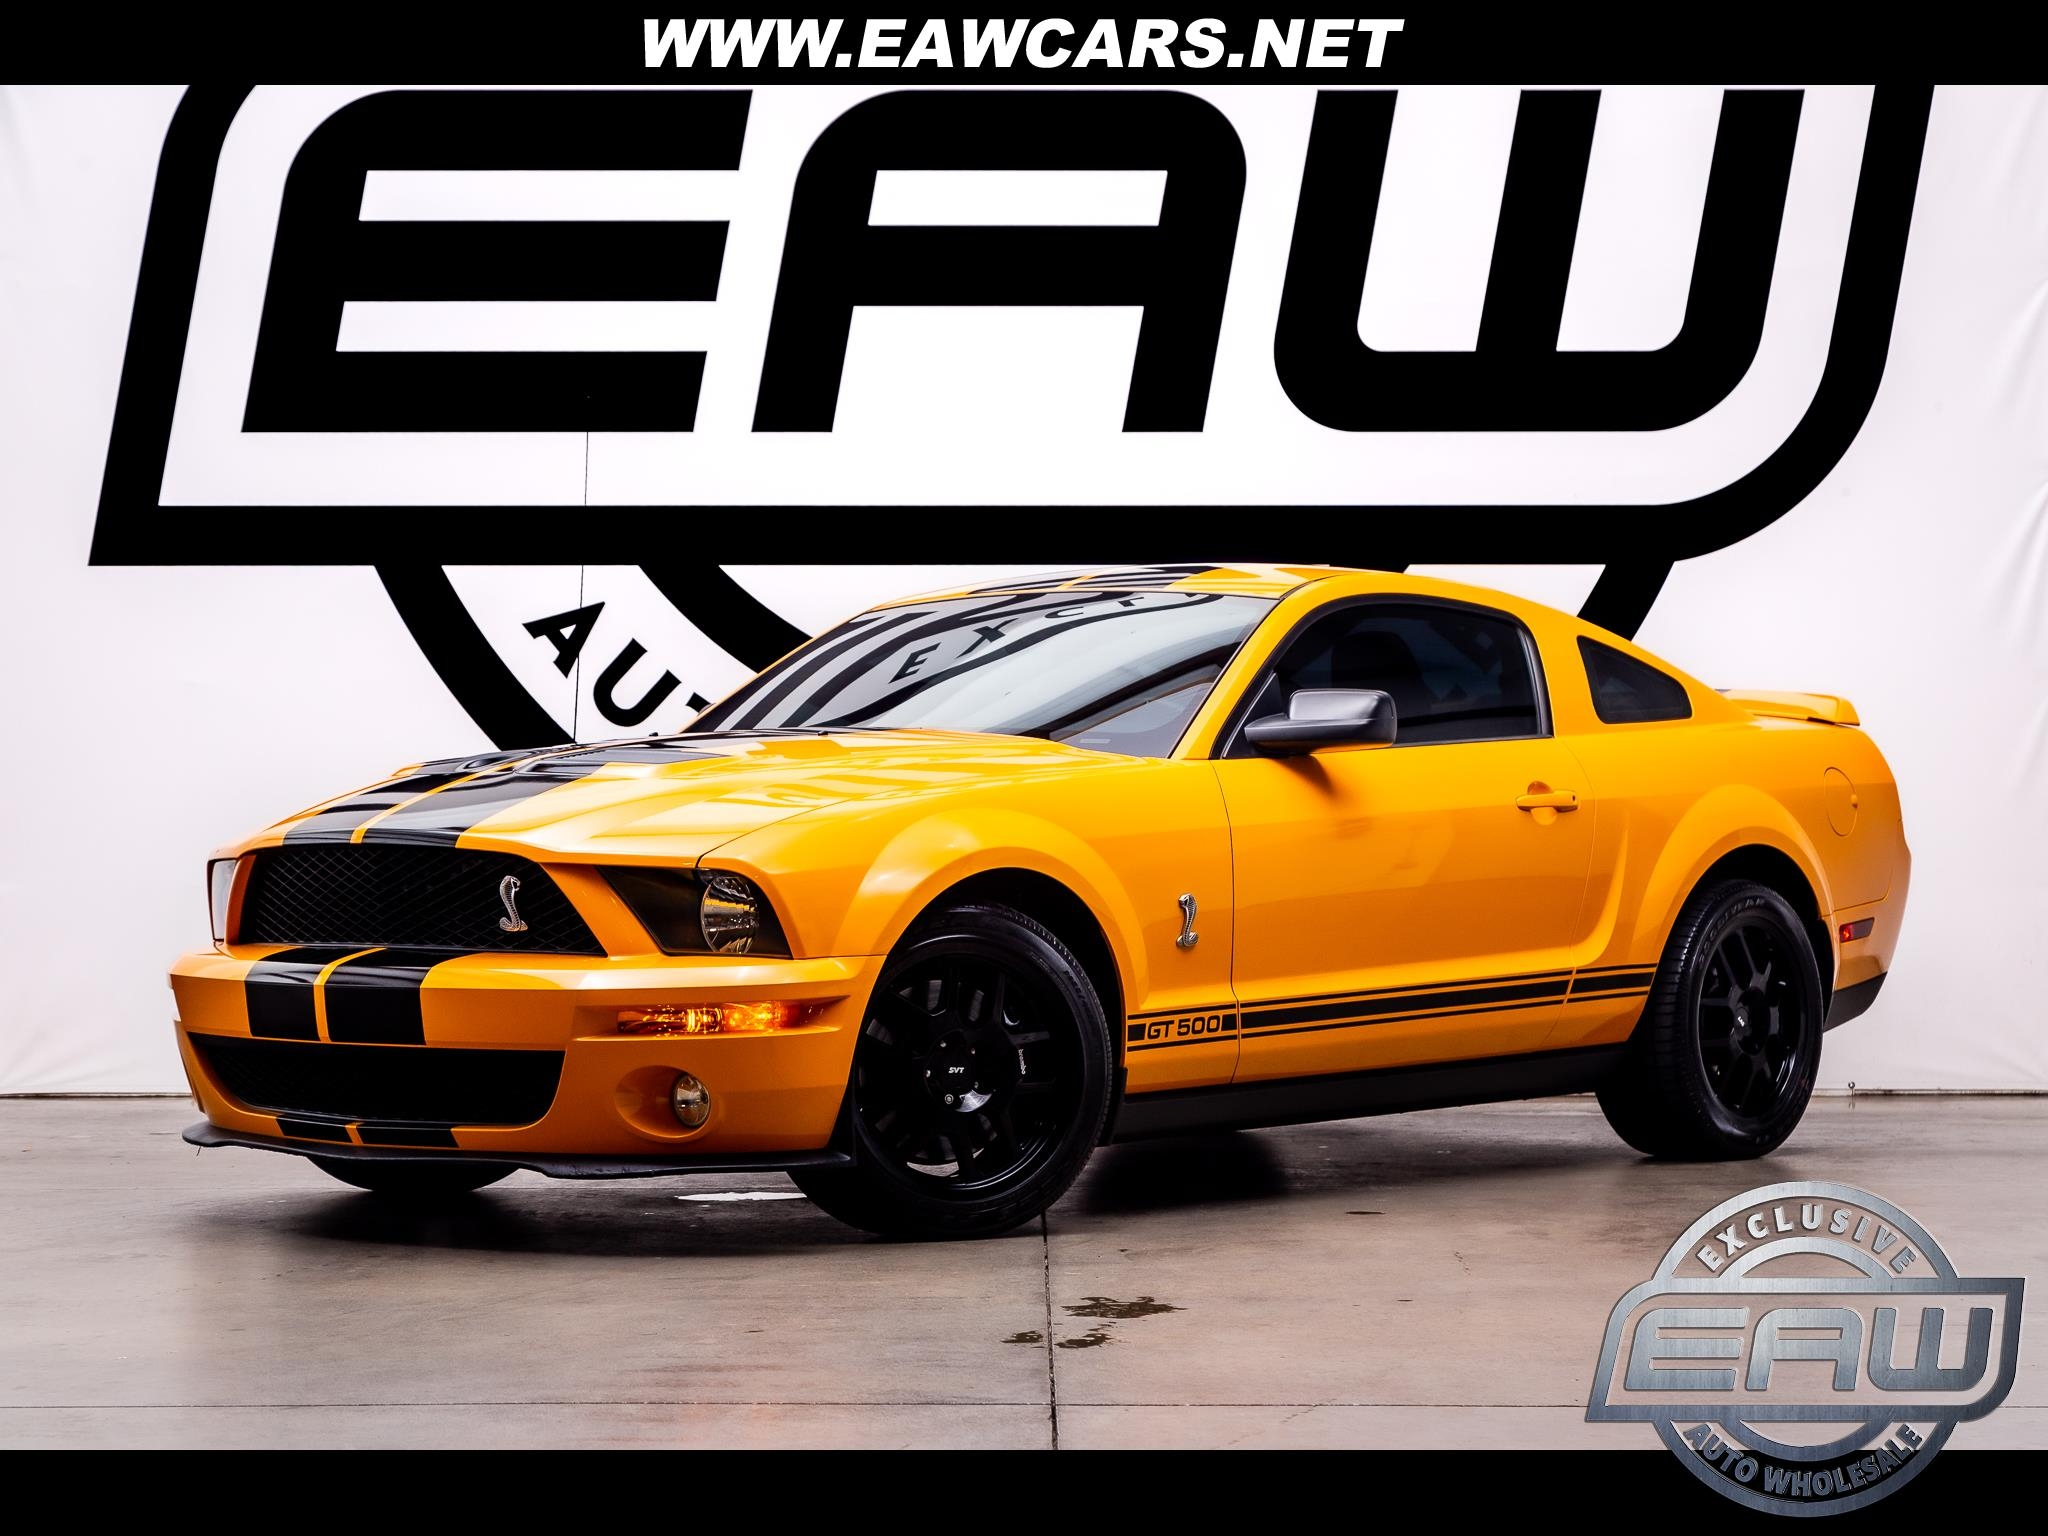 Ford Mustang 2dr Cpe Shelby GT500 2008